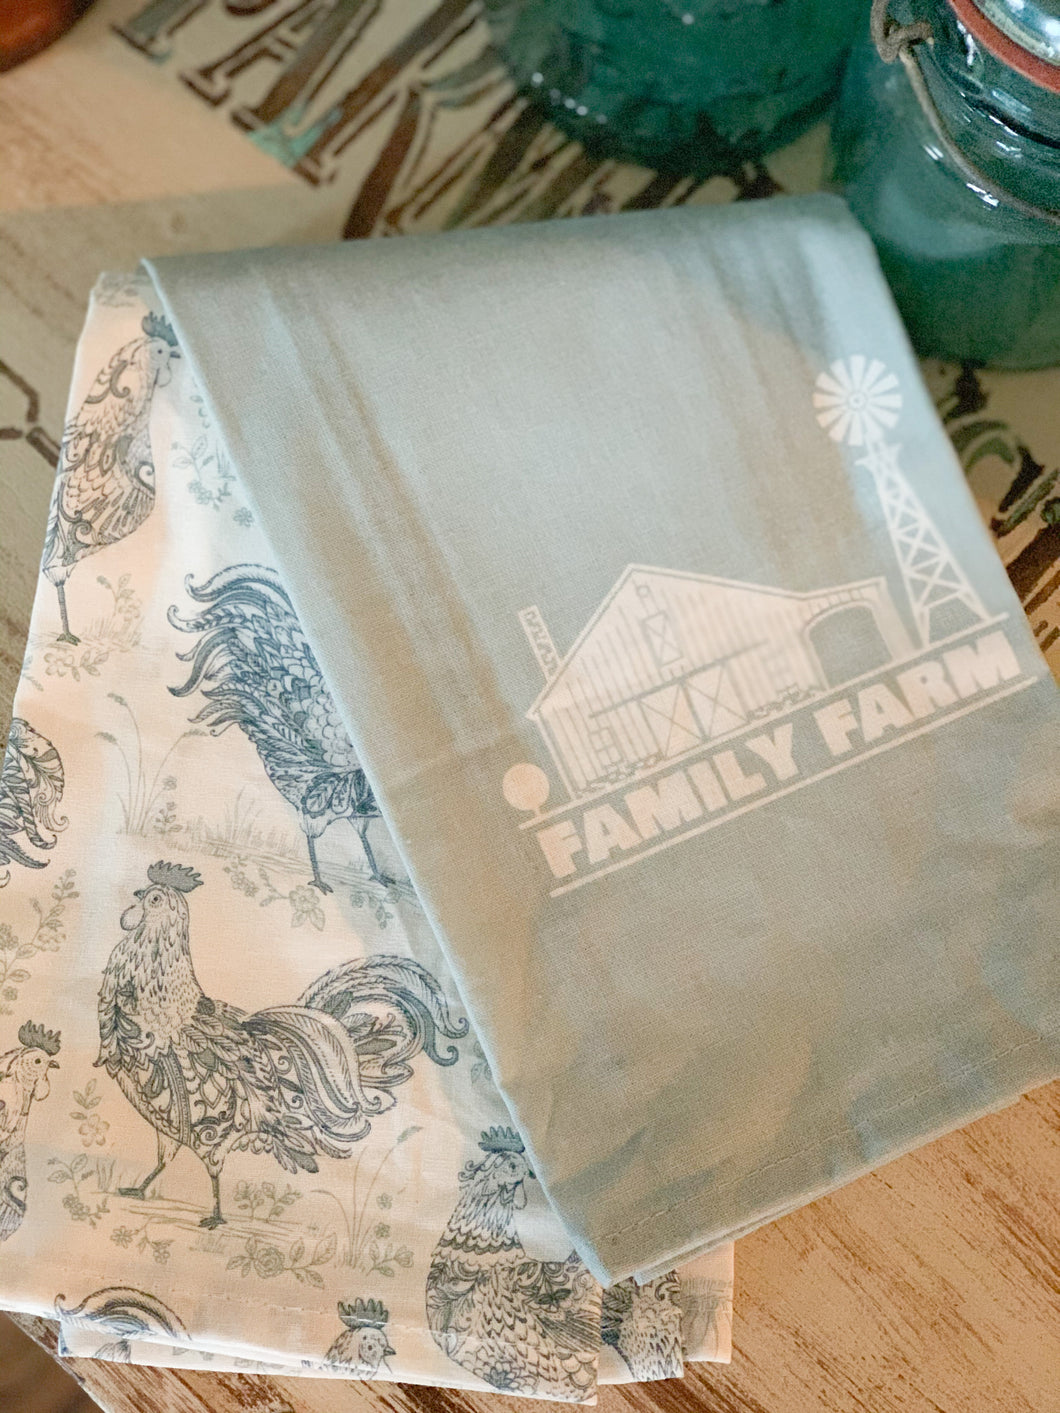 Family Farm Decorative Kitchen Towels (2 pack)